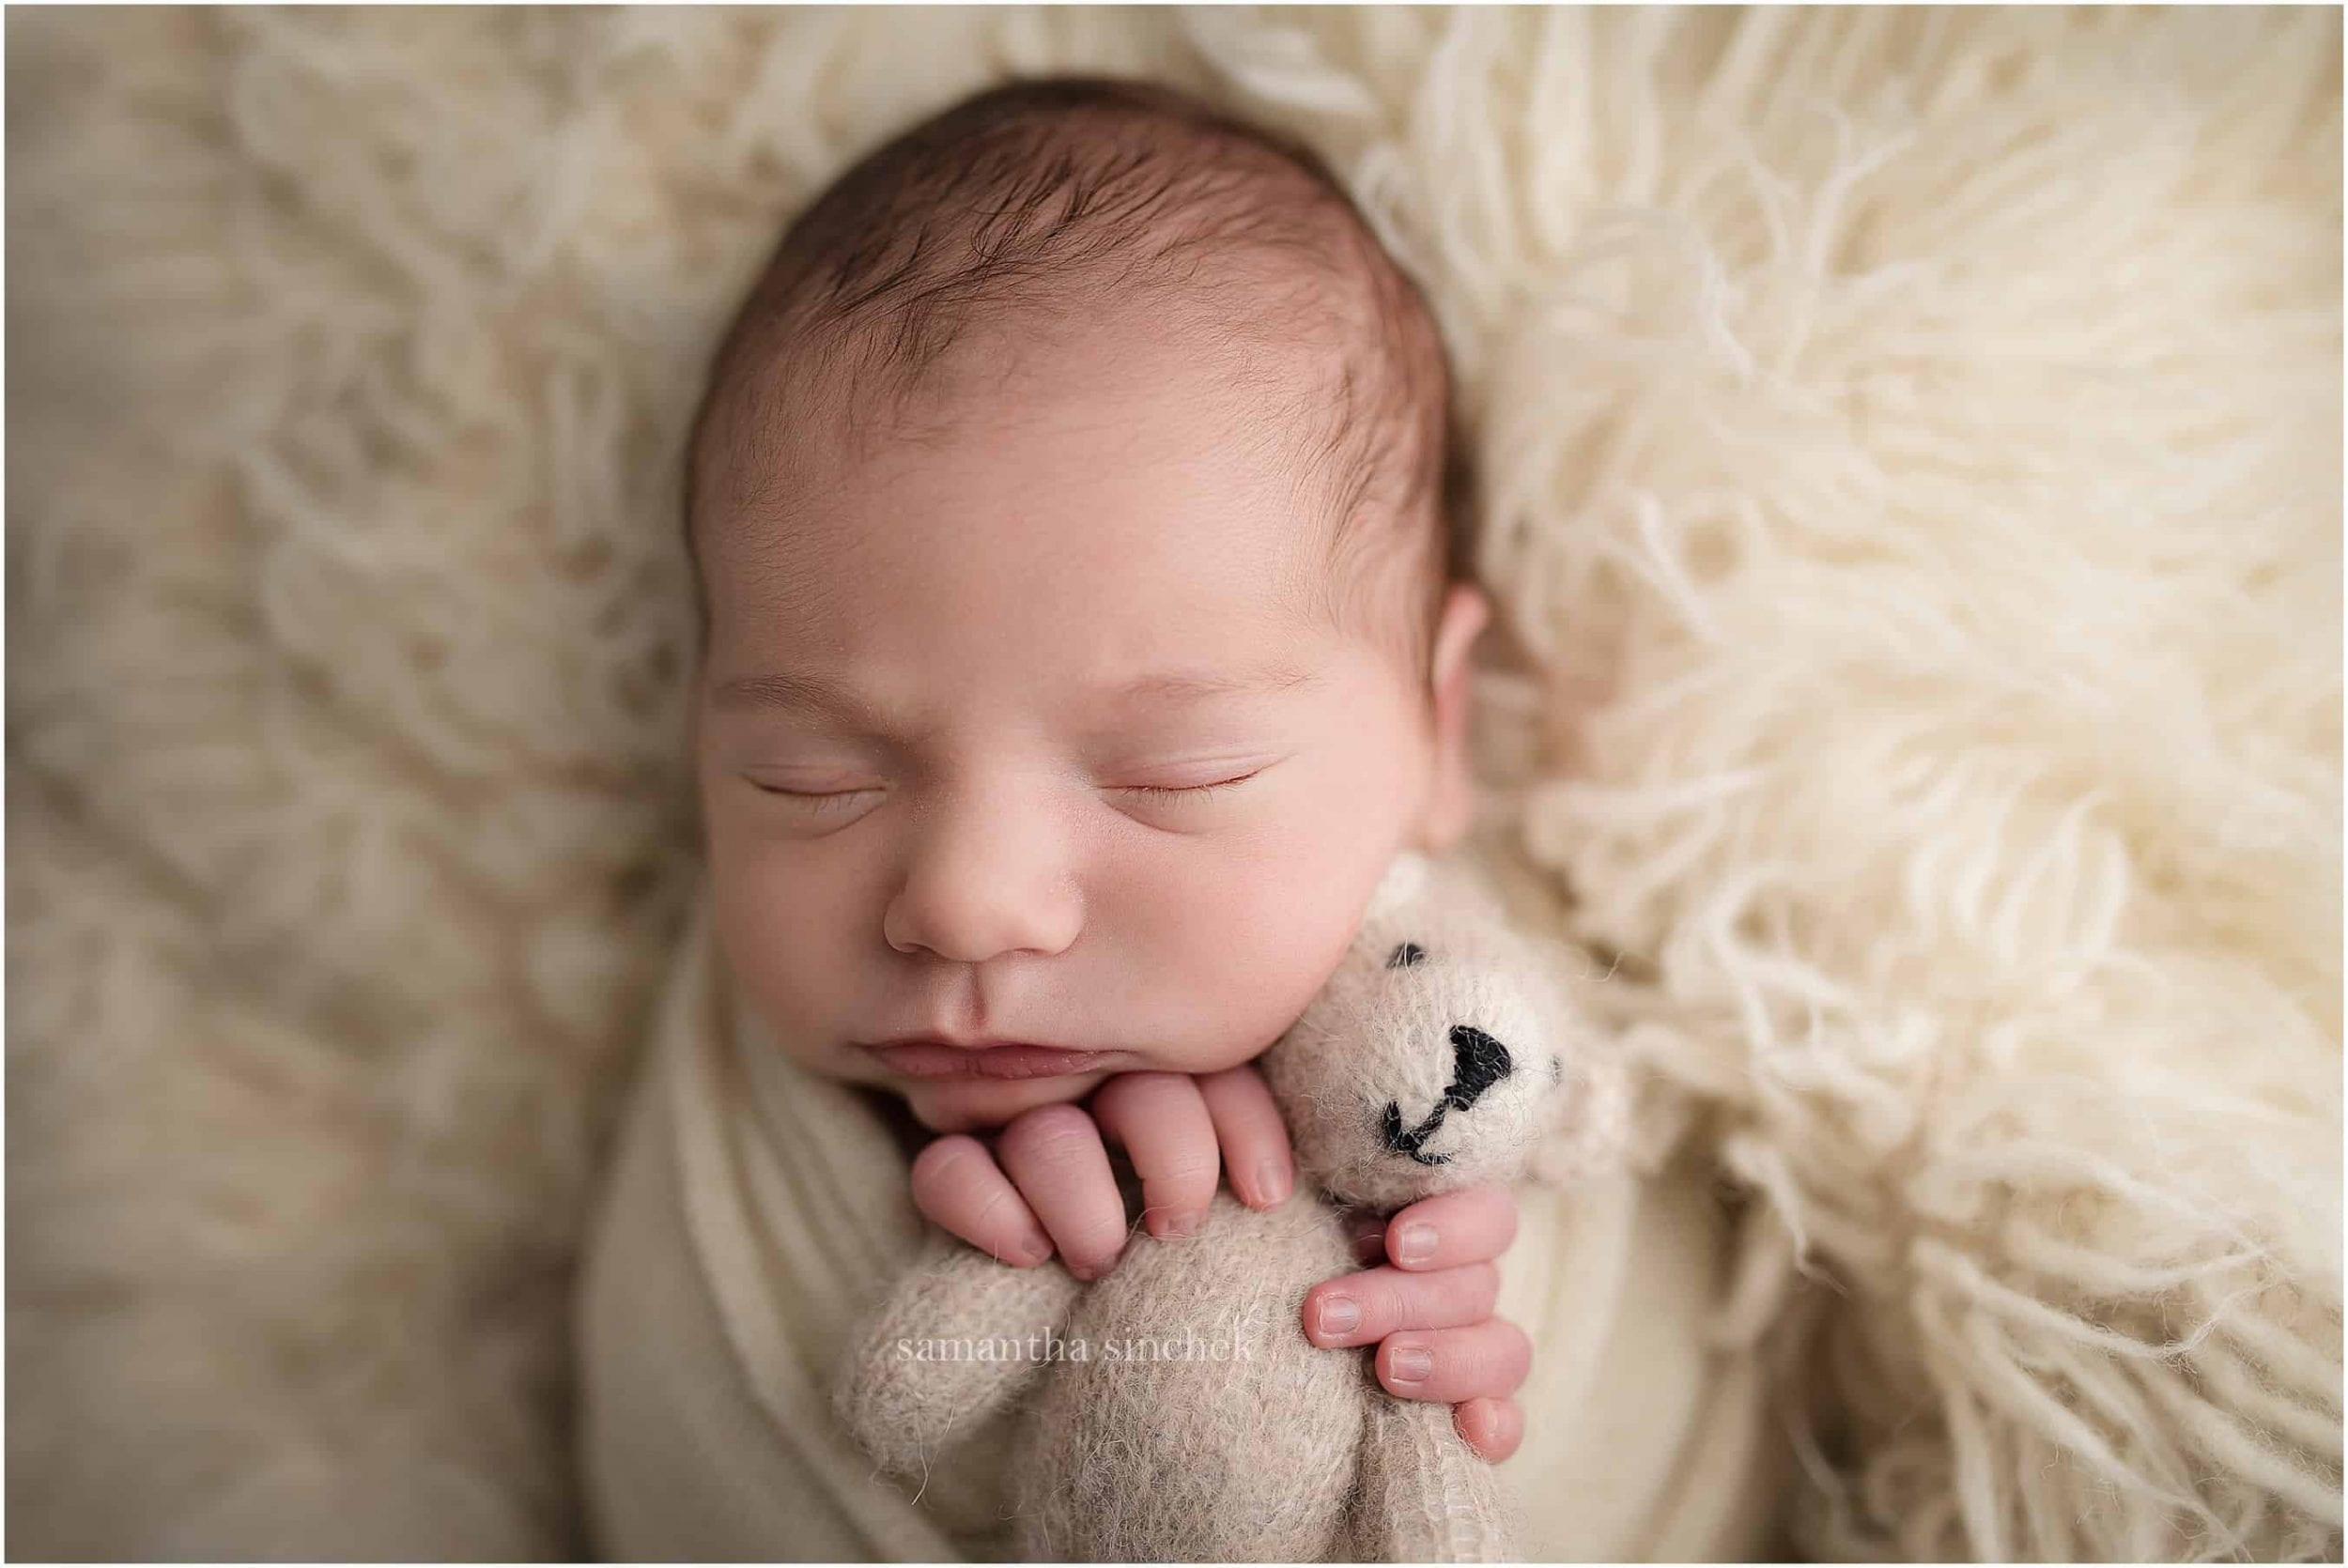 newborn holds small bear during pictures with Samantha sinchek photography of Cincinnati Ohio